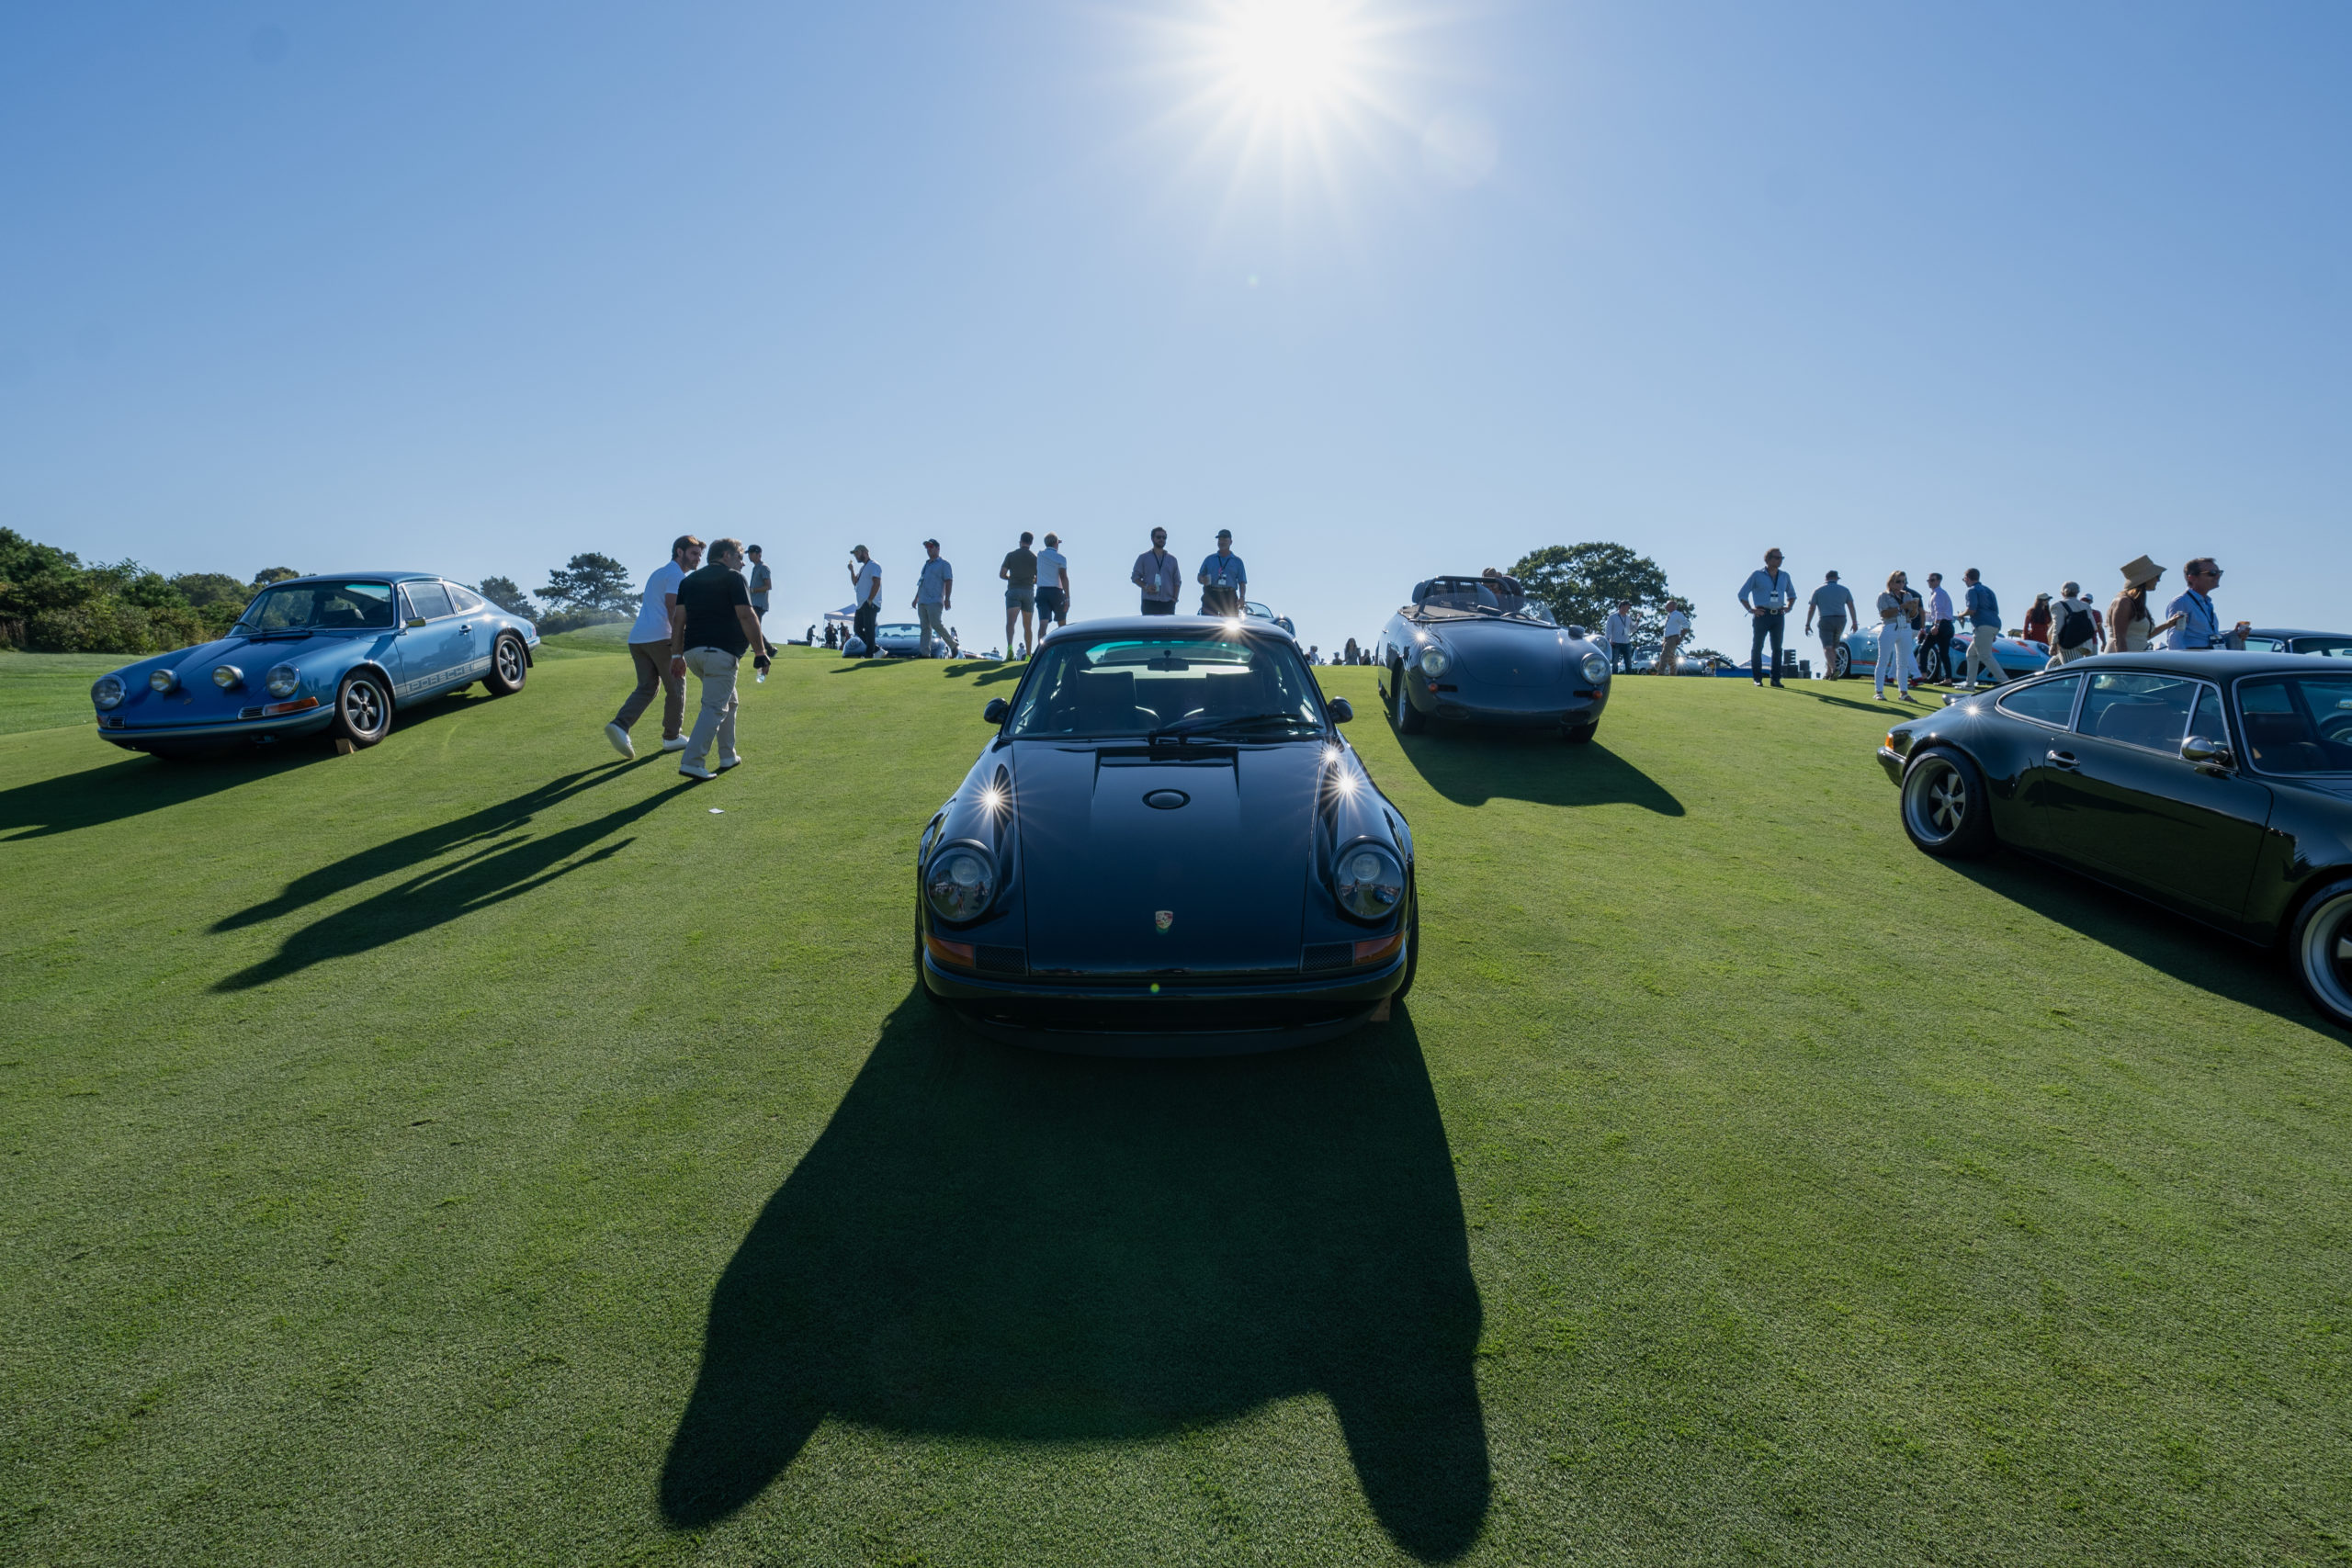 A number of automobiles, both classic and modern, took over The Bridge Golf Course on Saturday, the fifth annual event.